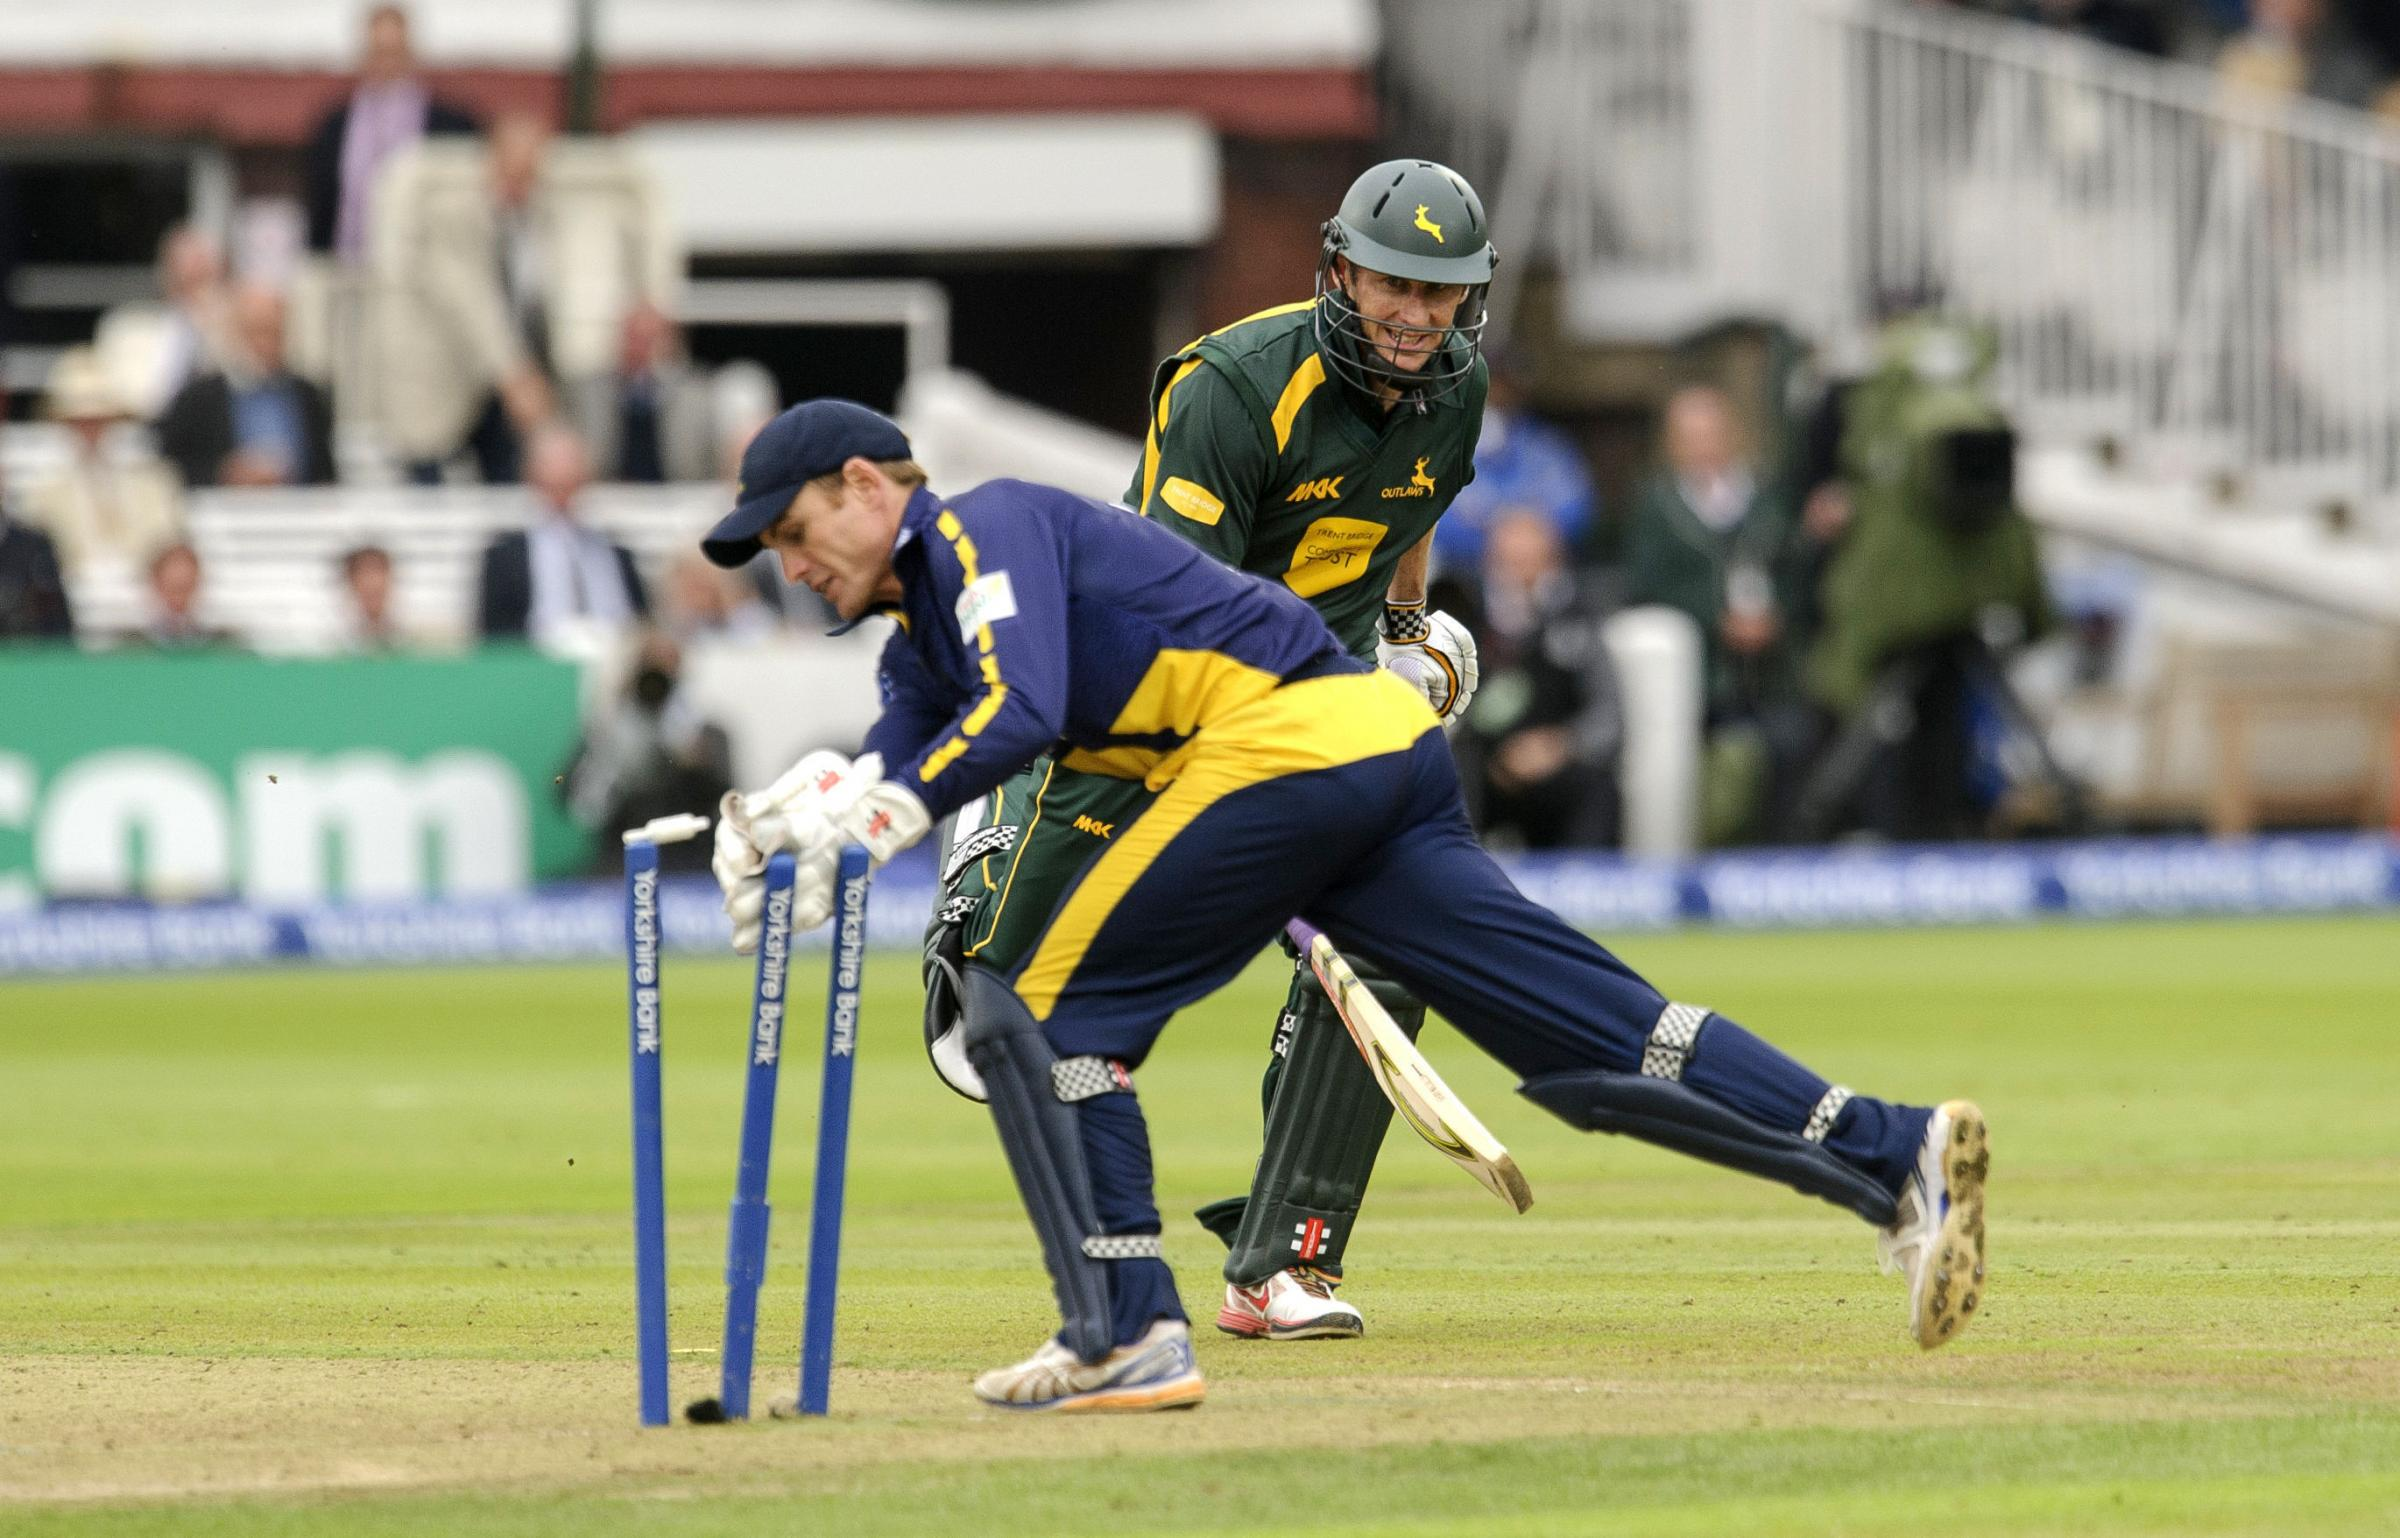 GLAMORGAN GREAT: Mark Wallace has retired after 18 years with the county's first team